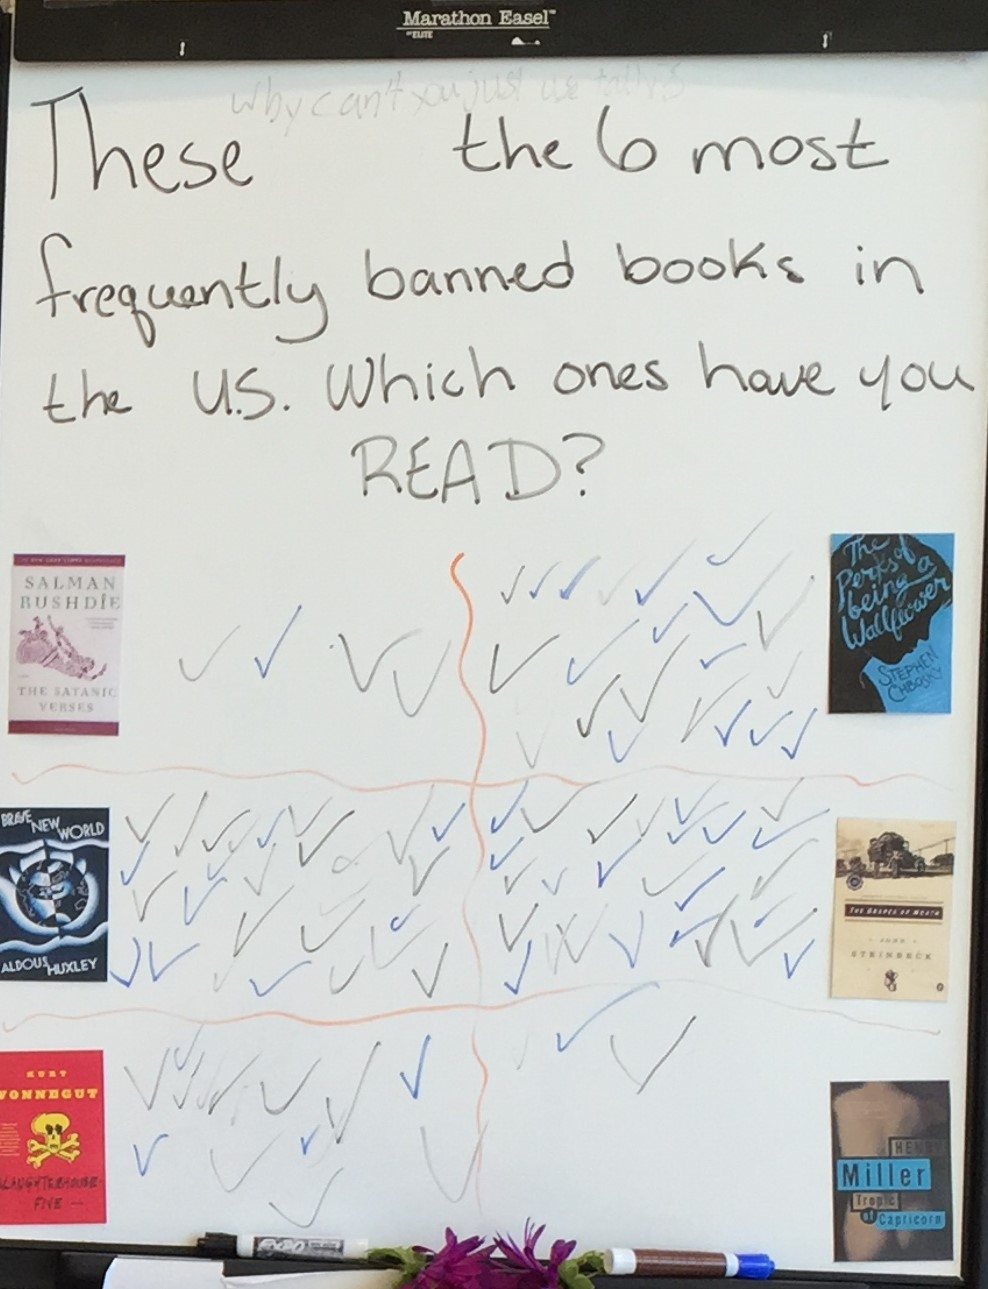 reading banned books image